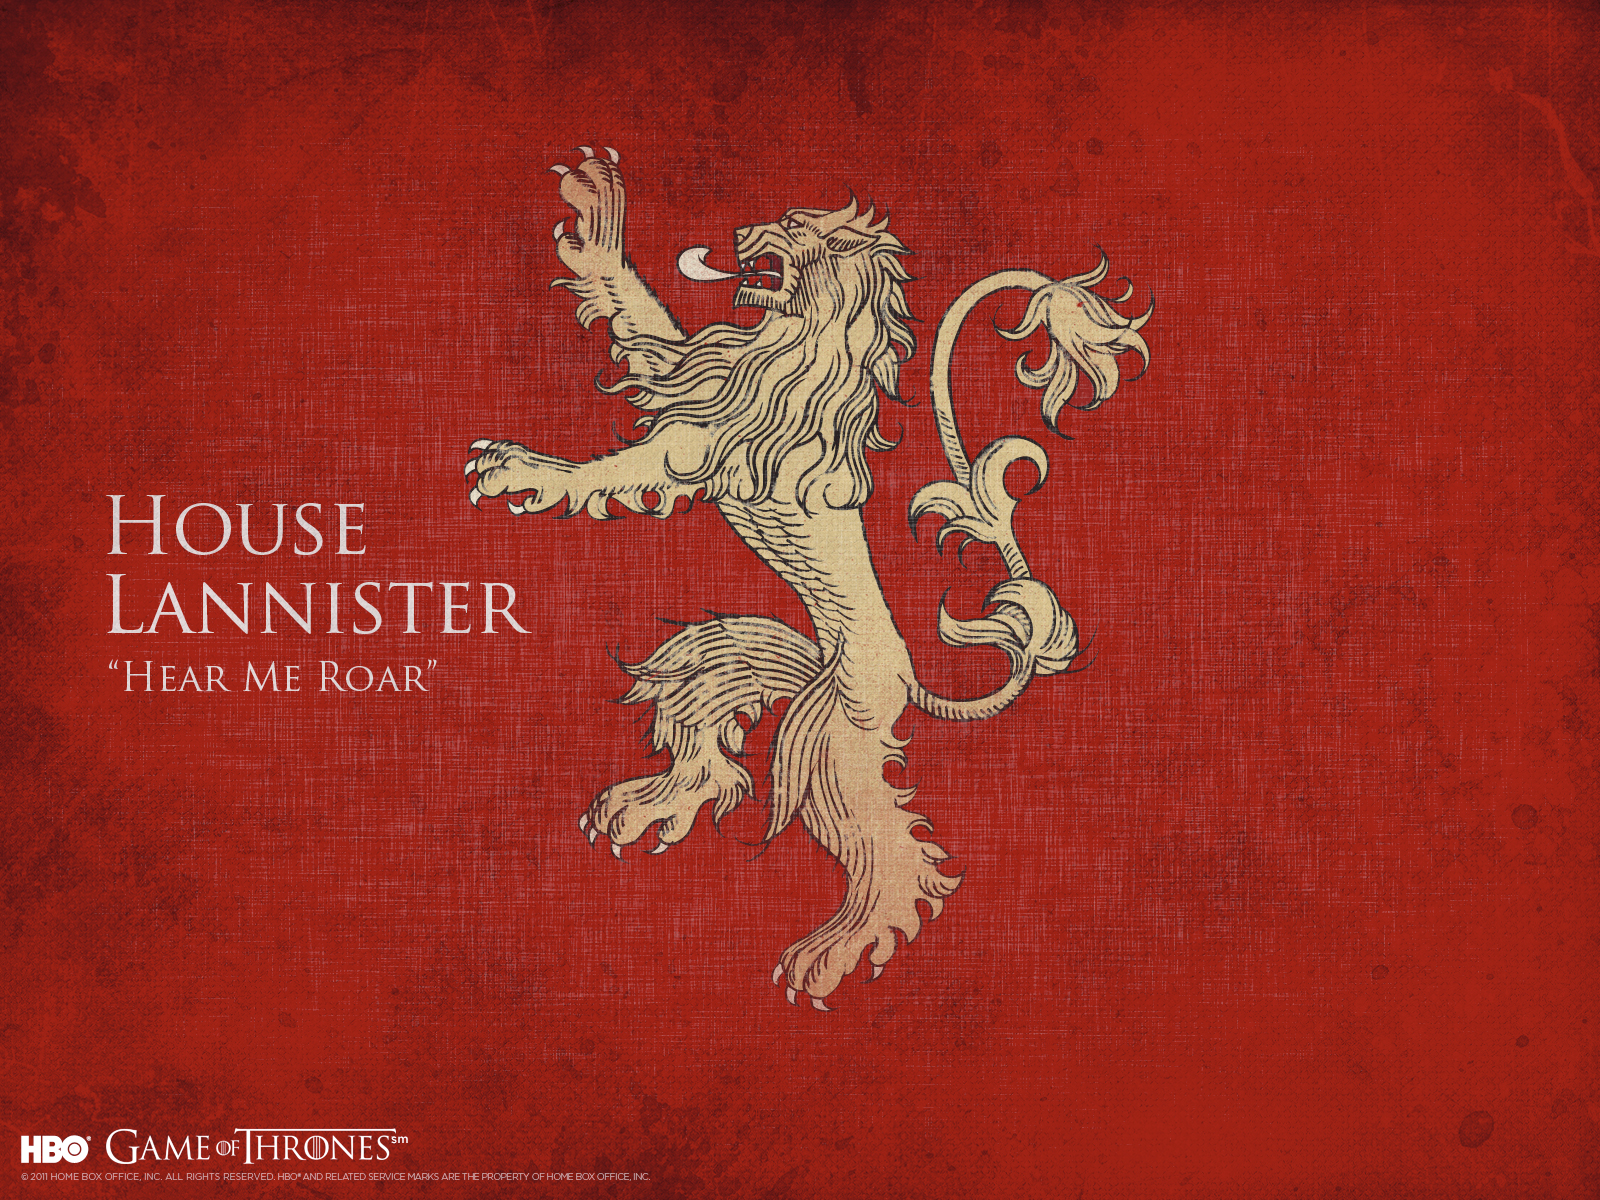 House Lannister - Game of Thrones